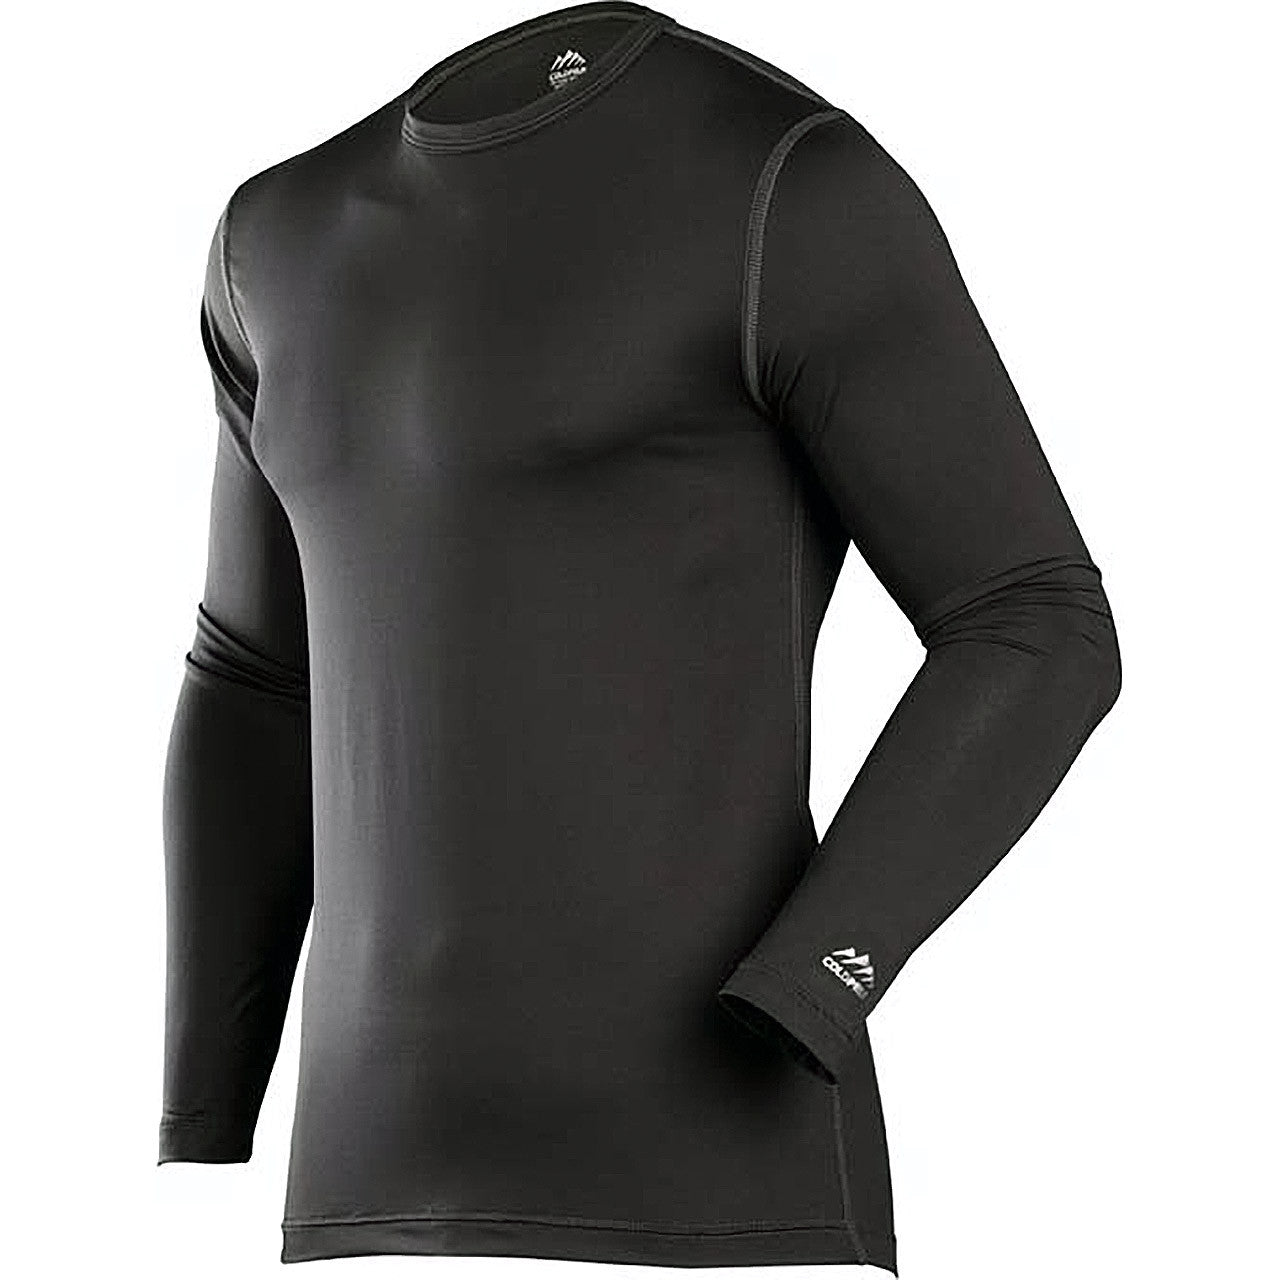 ColdPruf Premium Performance Men's Base Layer Top